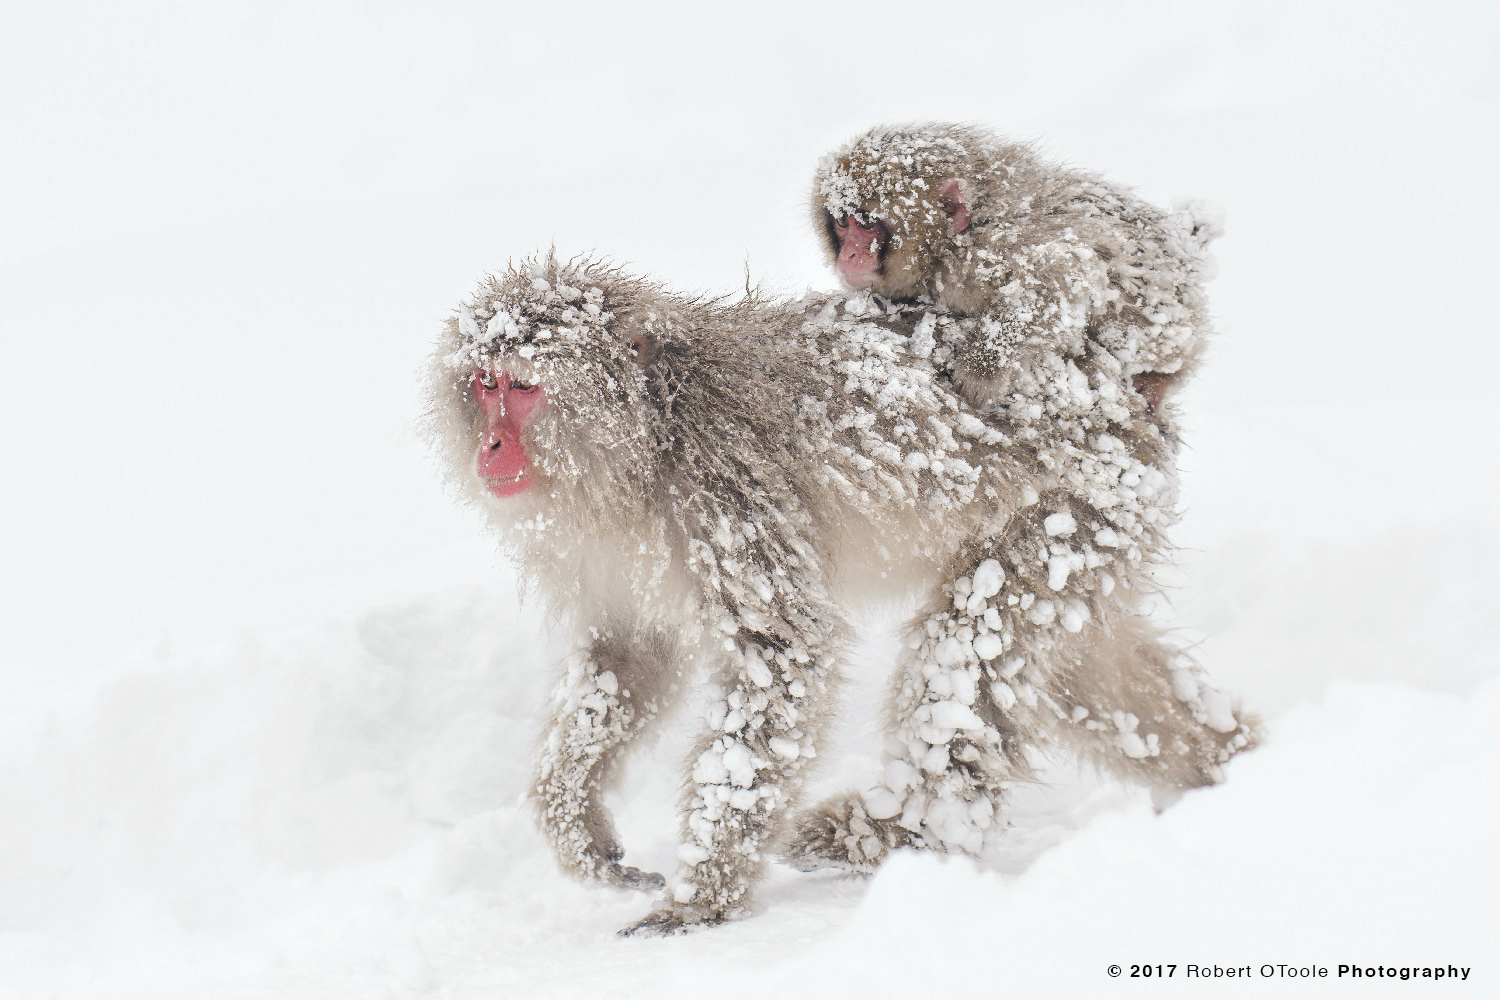 Infant Snow Monkey Riding Adult After a Blizzard